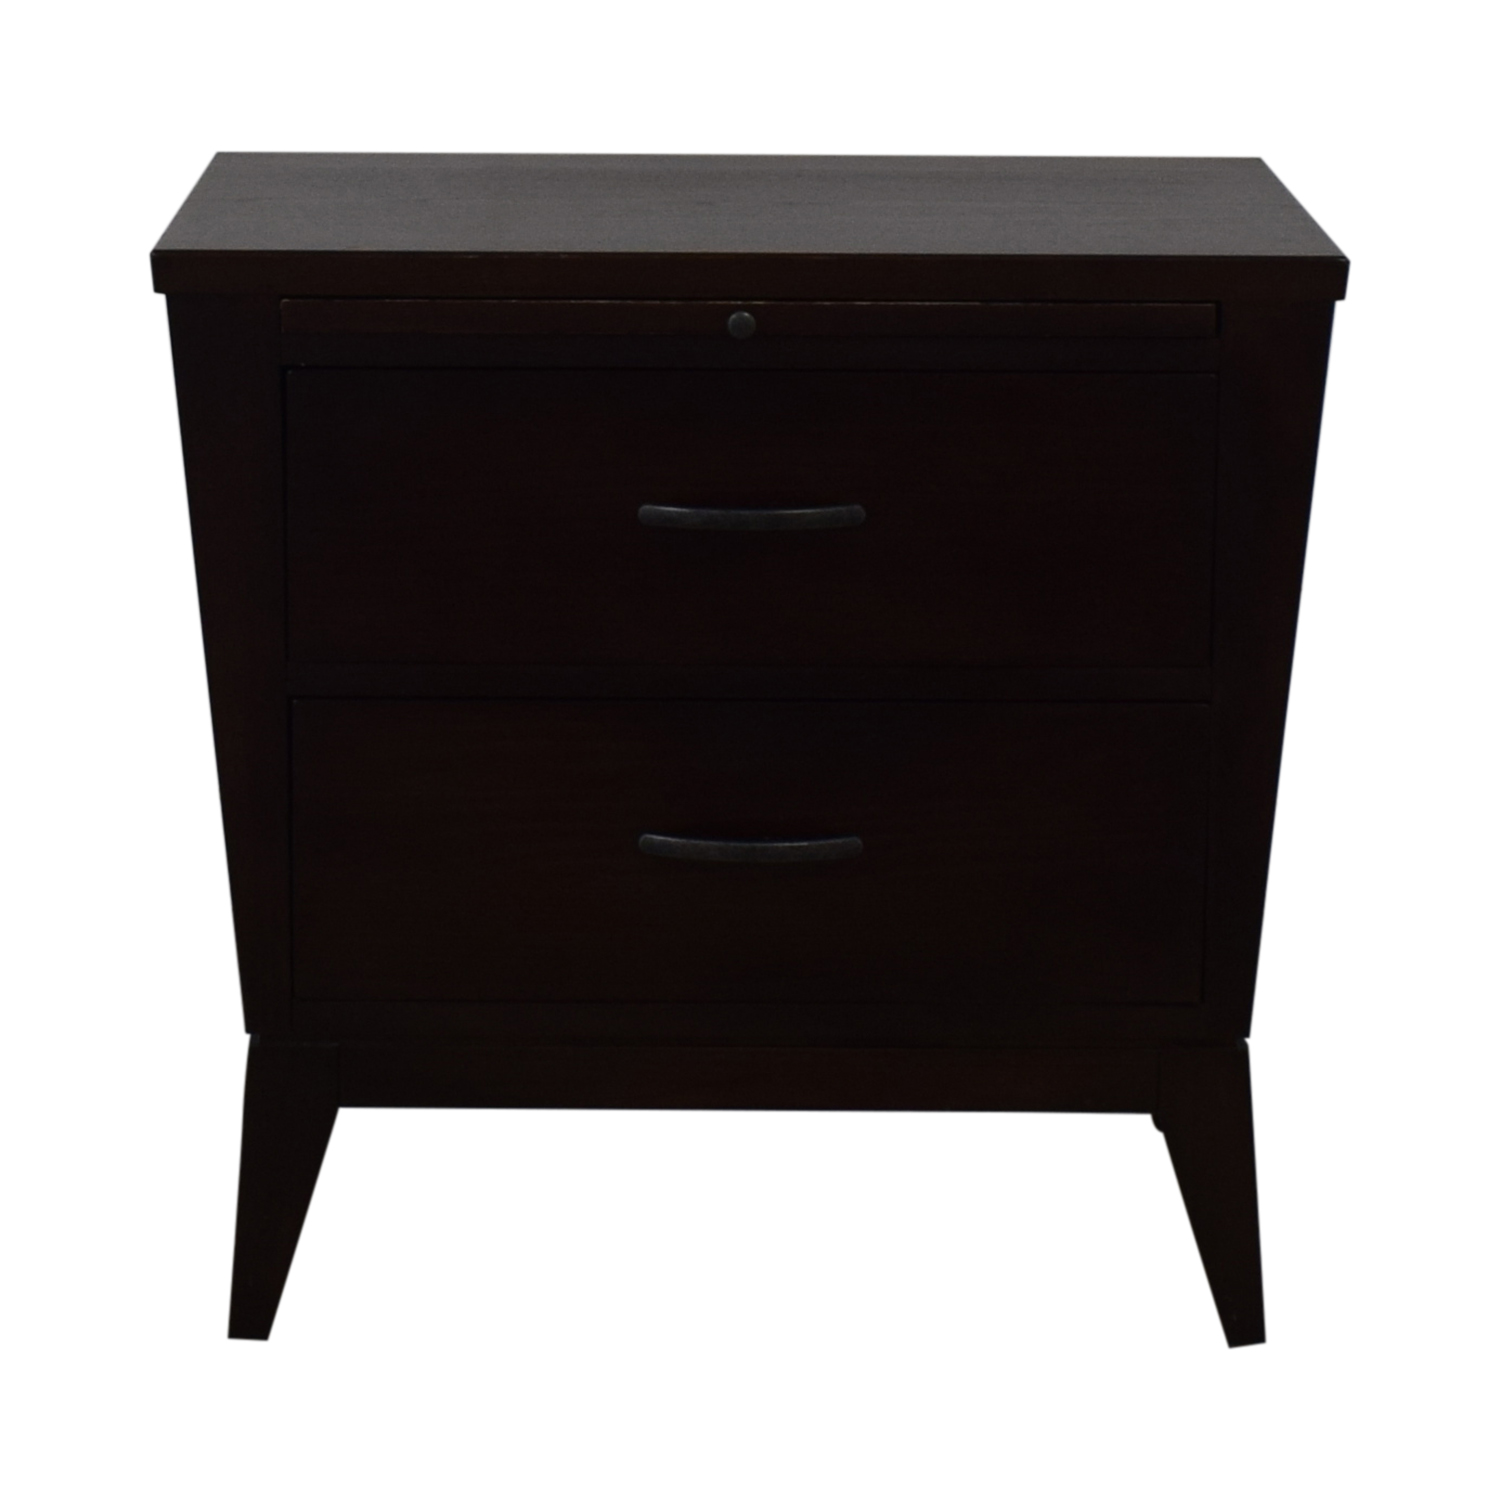 buy Ethan Allen Ethan Allen Nightstand with Drawers online